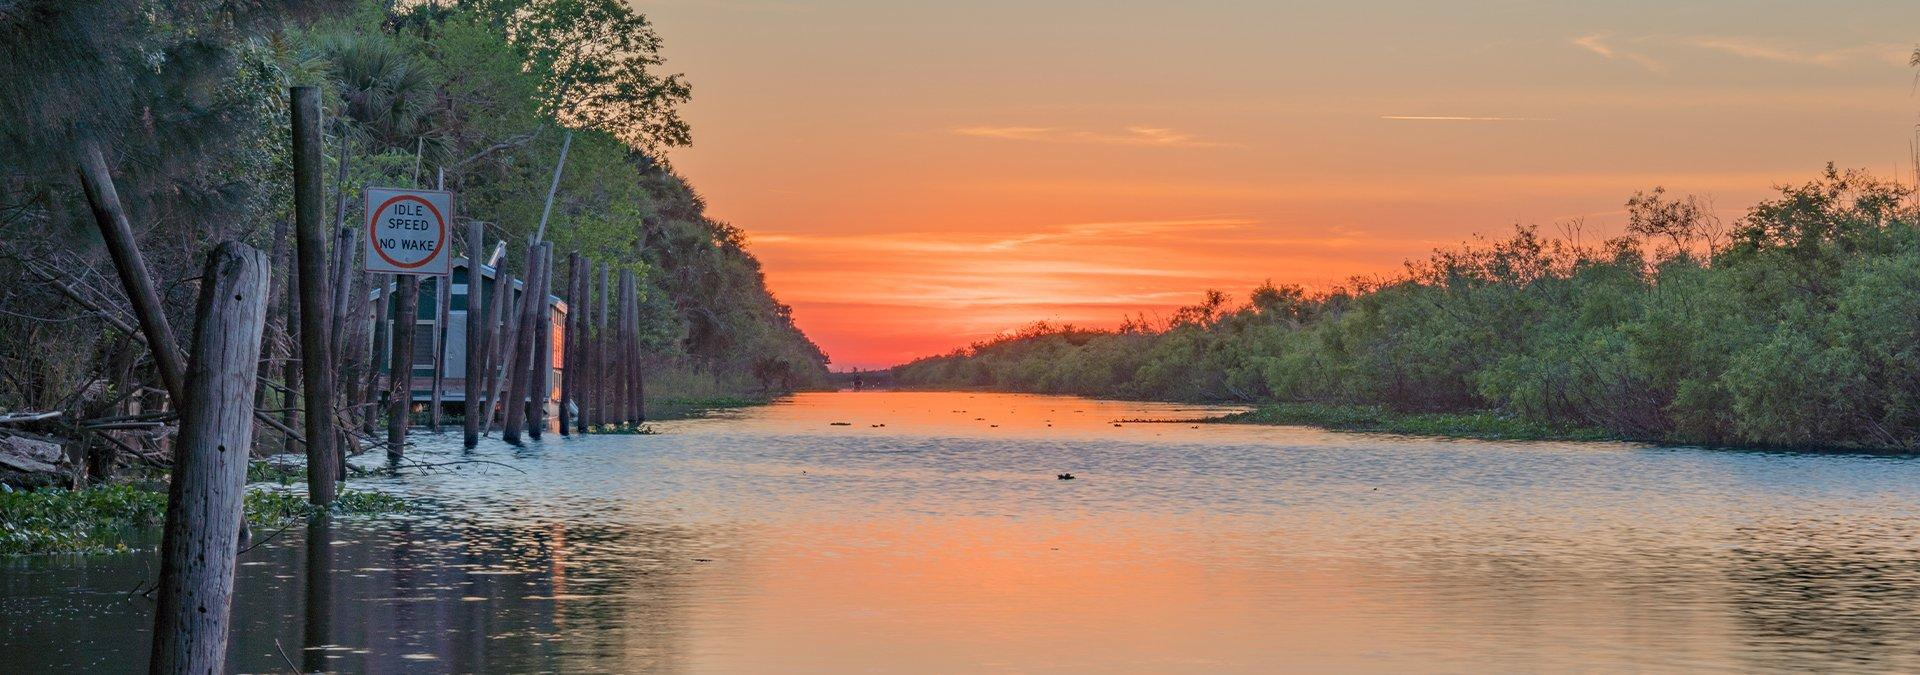 sunset view of the st johns river in orange park